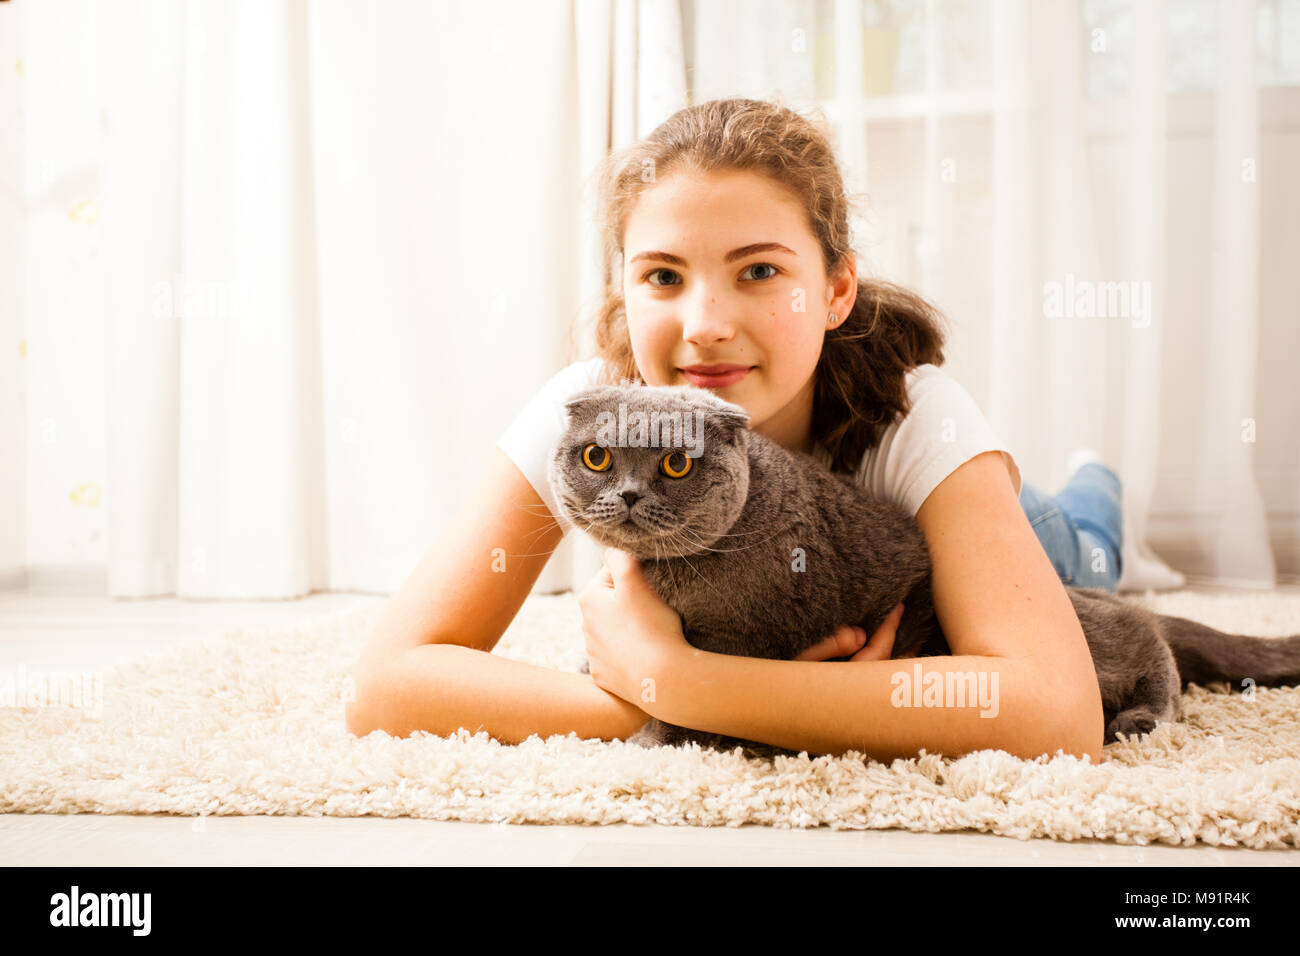 the girl is huging her cat - Stock Image